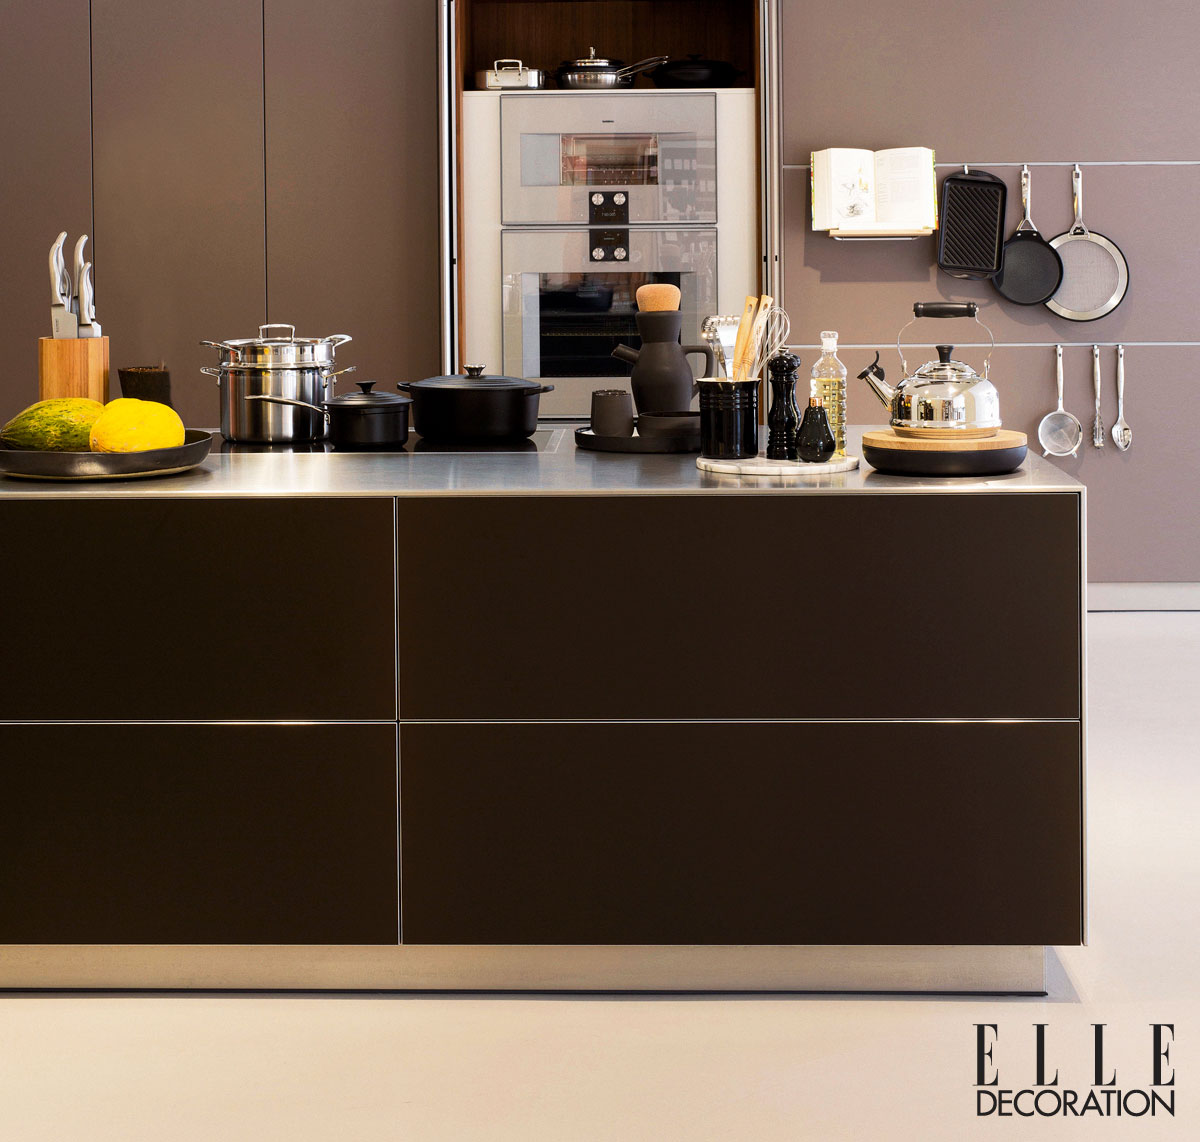 Newest trends in kitchen appliance colors - 100 Implementing The Newest Kitchen Trends 2015